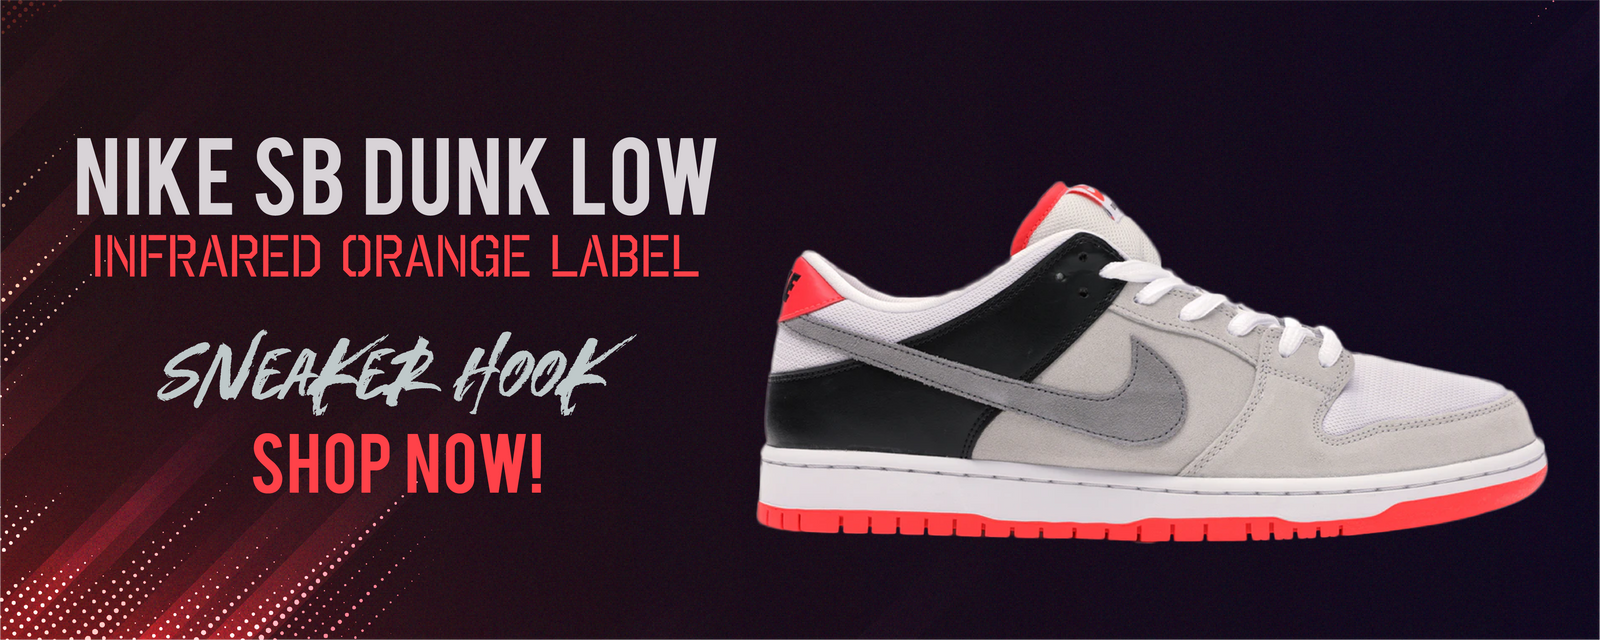 Nike SB Dunk Low Infrared Orange Label | Clothing To Match Sneakers